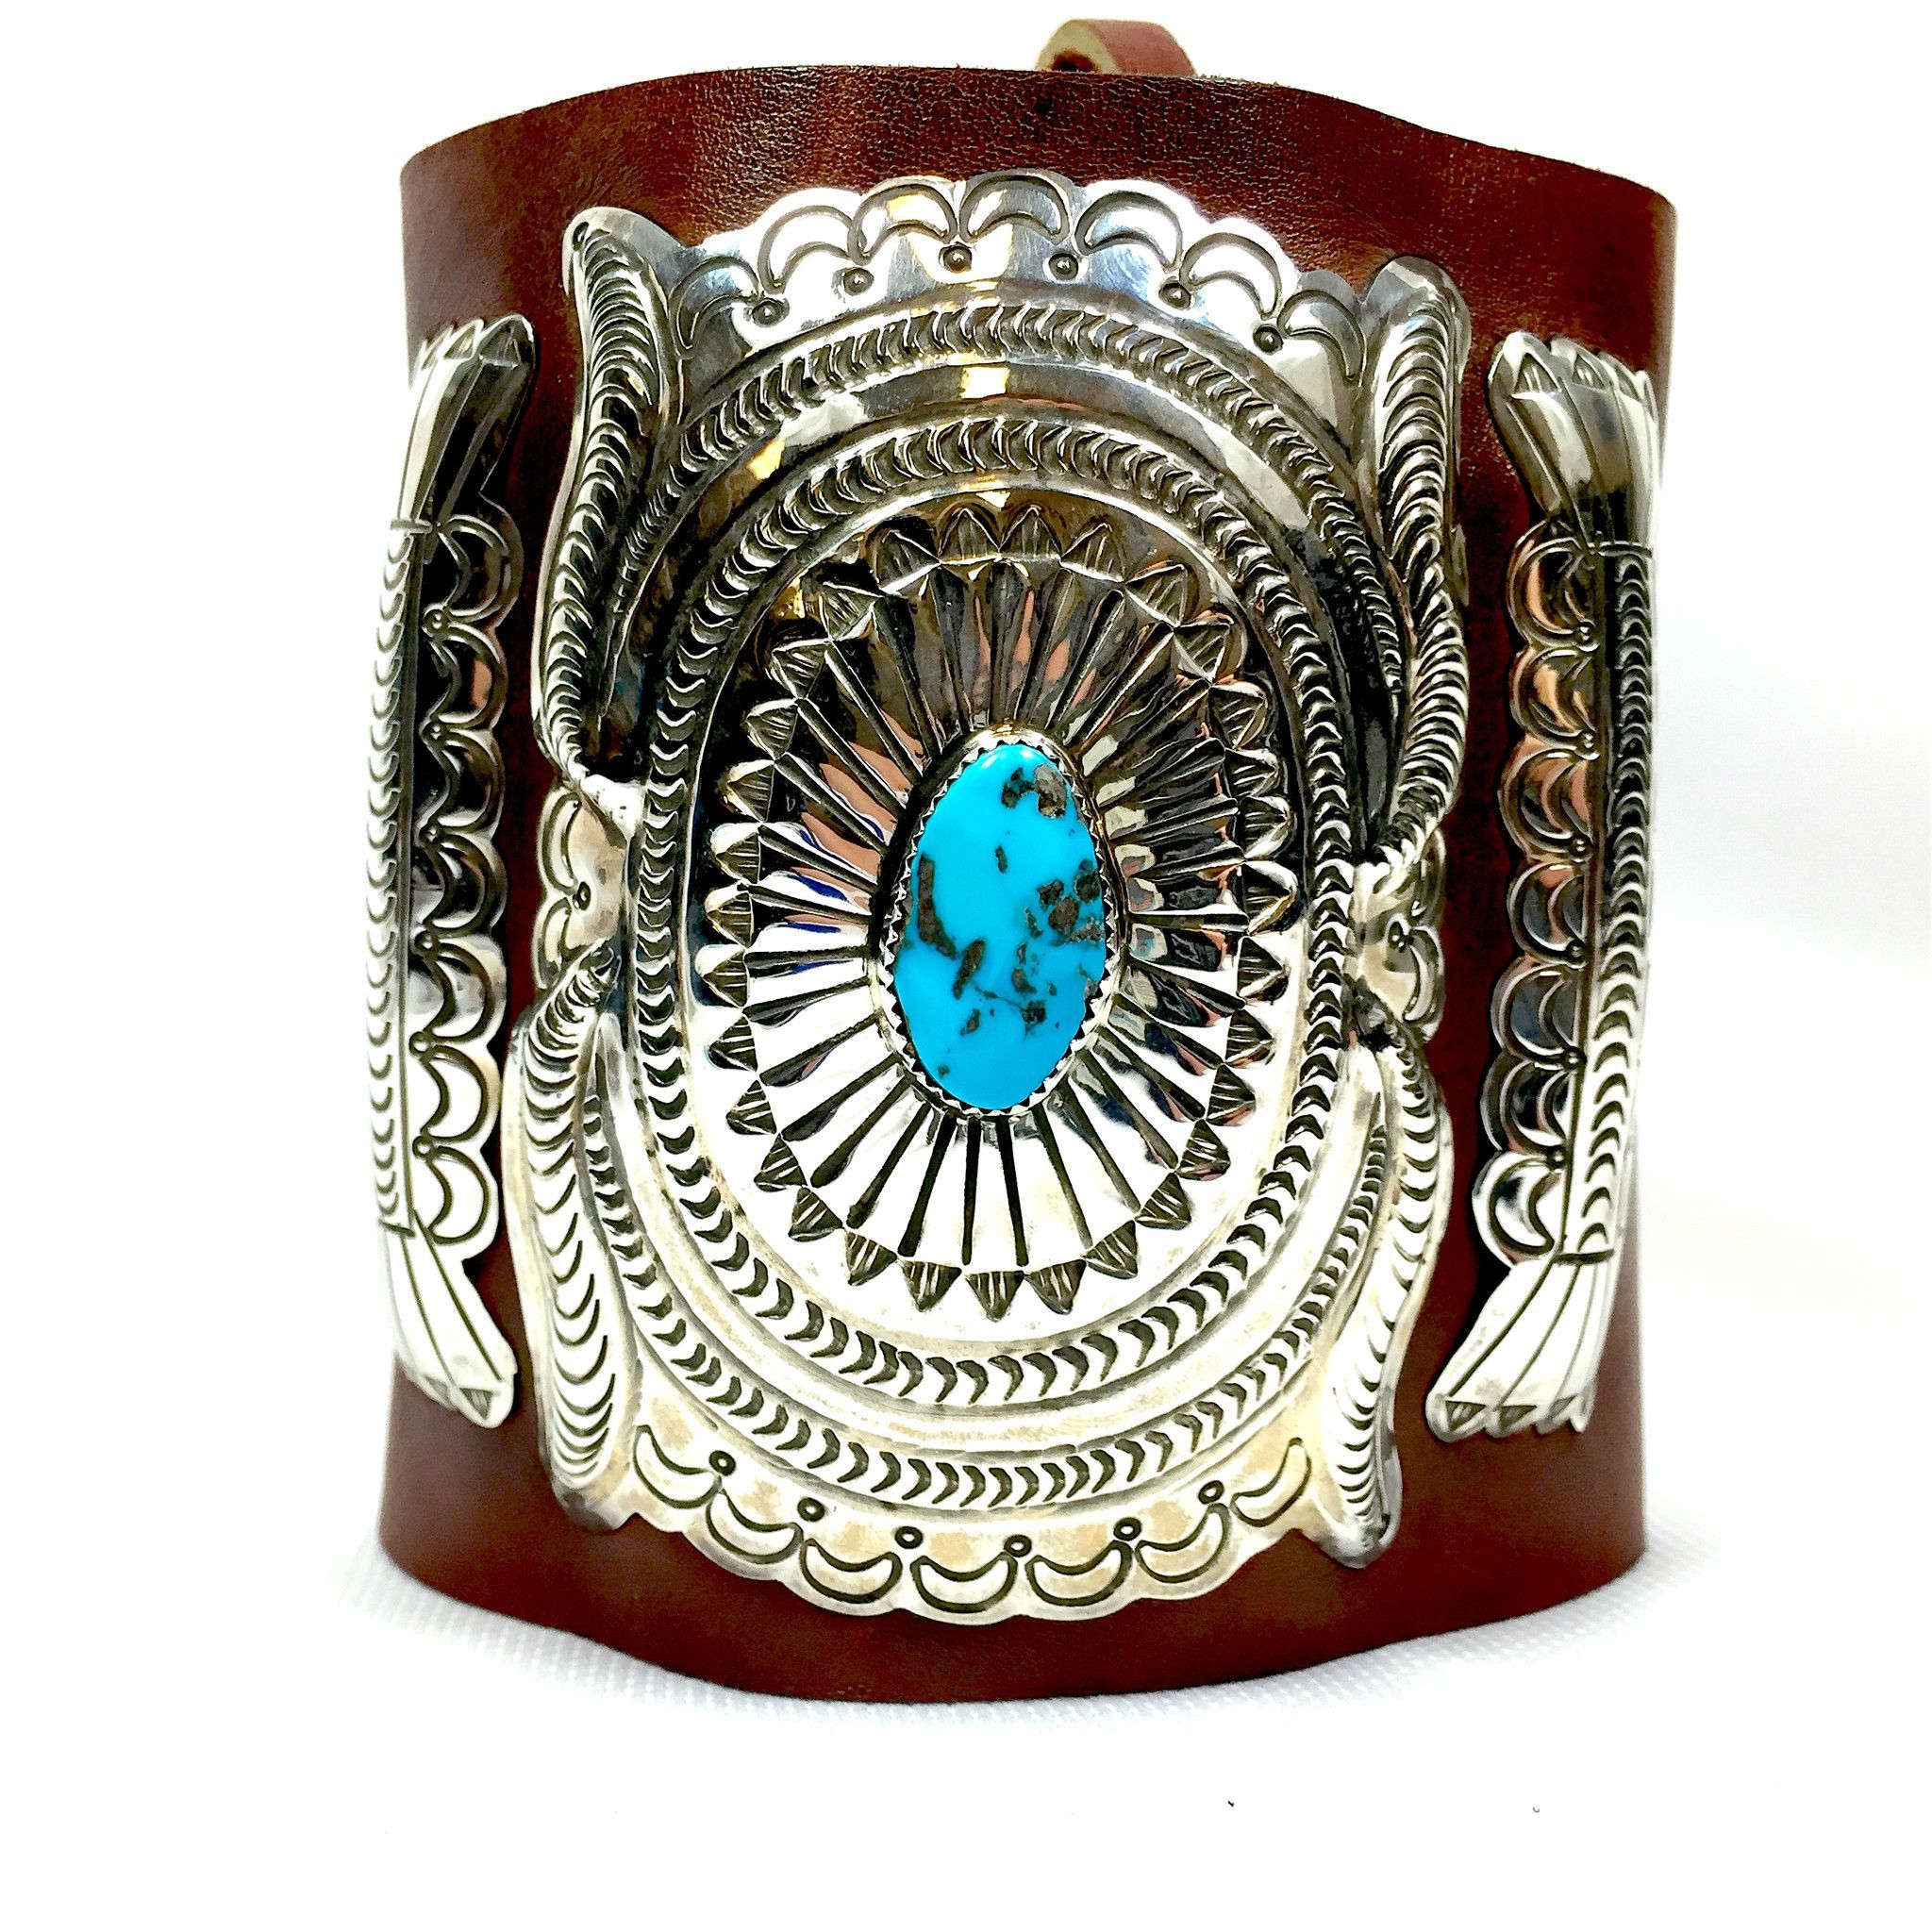 Leather Navajo Cuff with Sleeping Beauty Turquoise